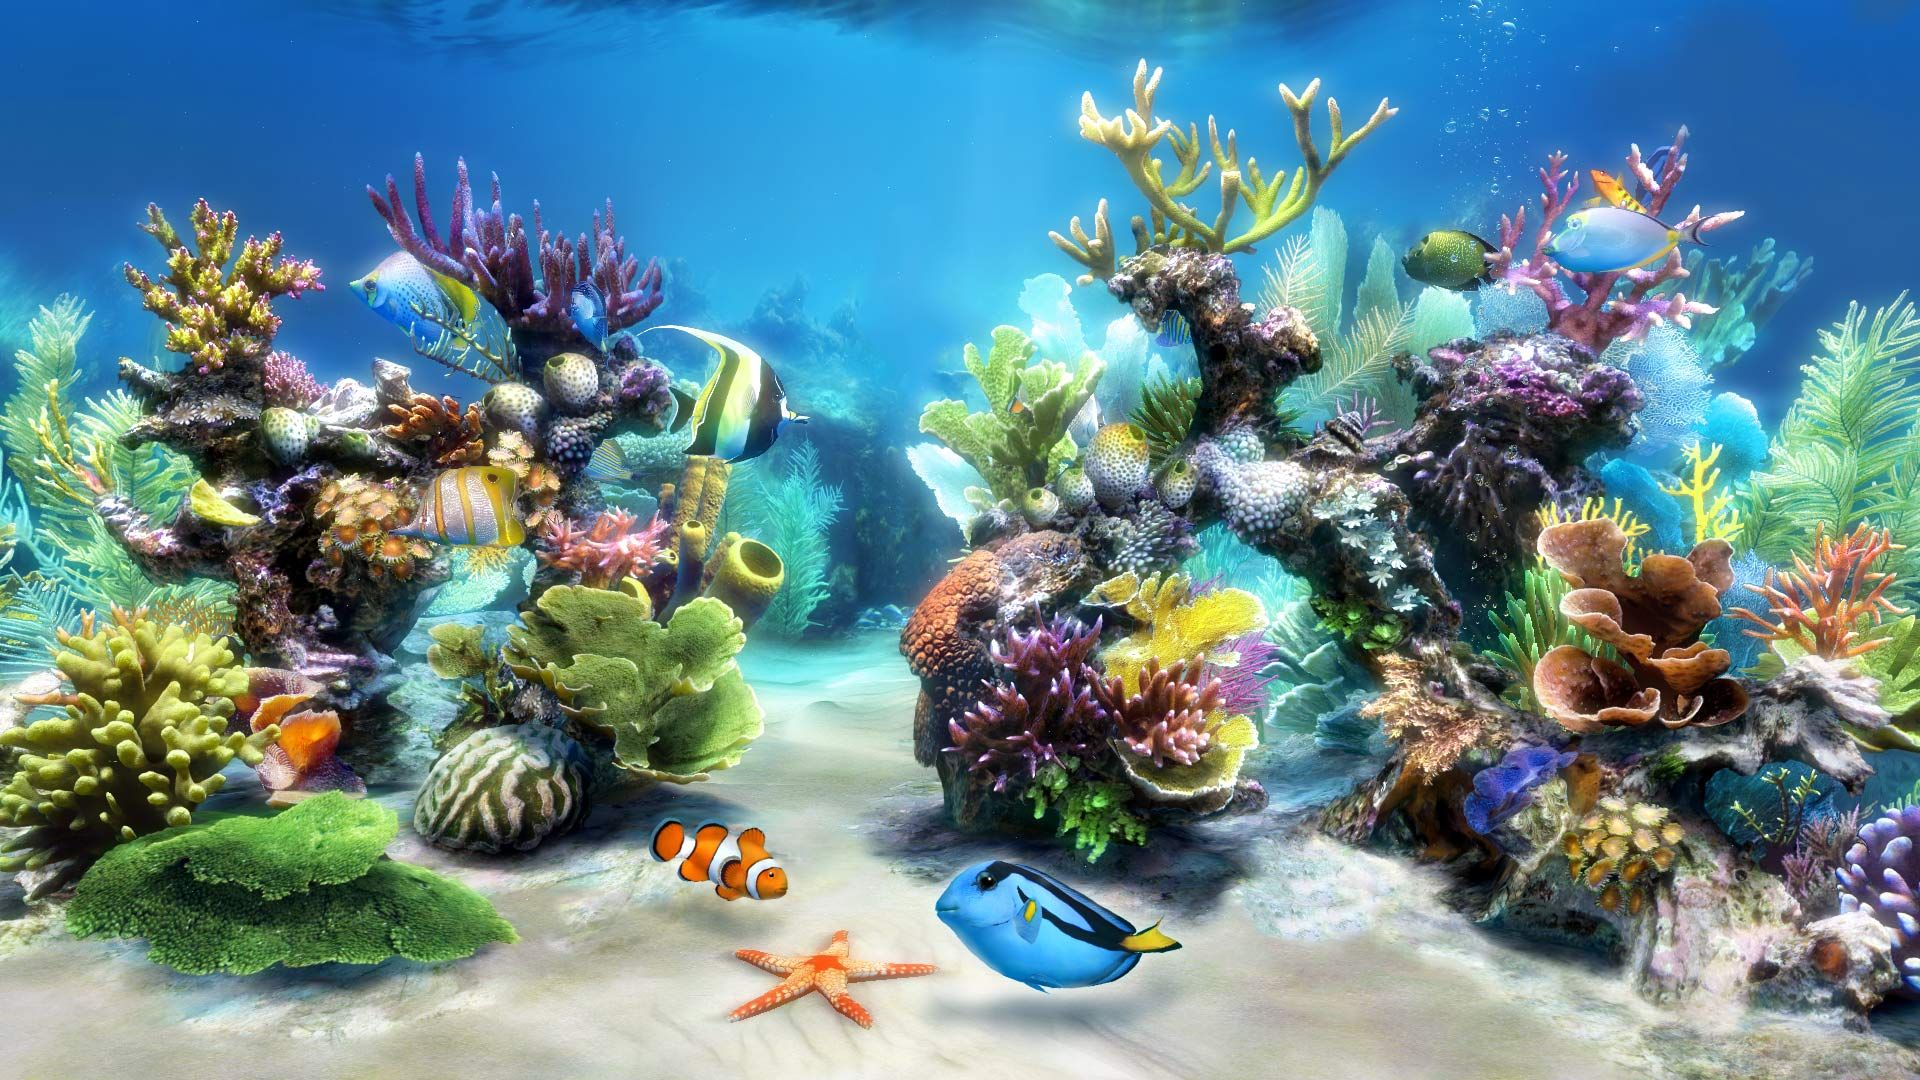 sim aquarium virtual aquarium screensaver and live wallpaper